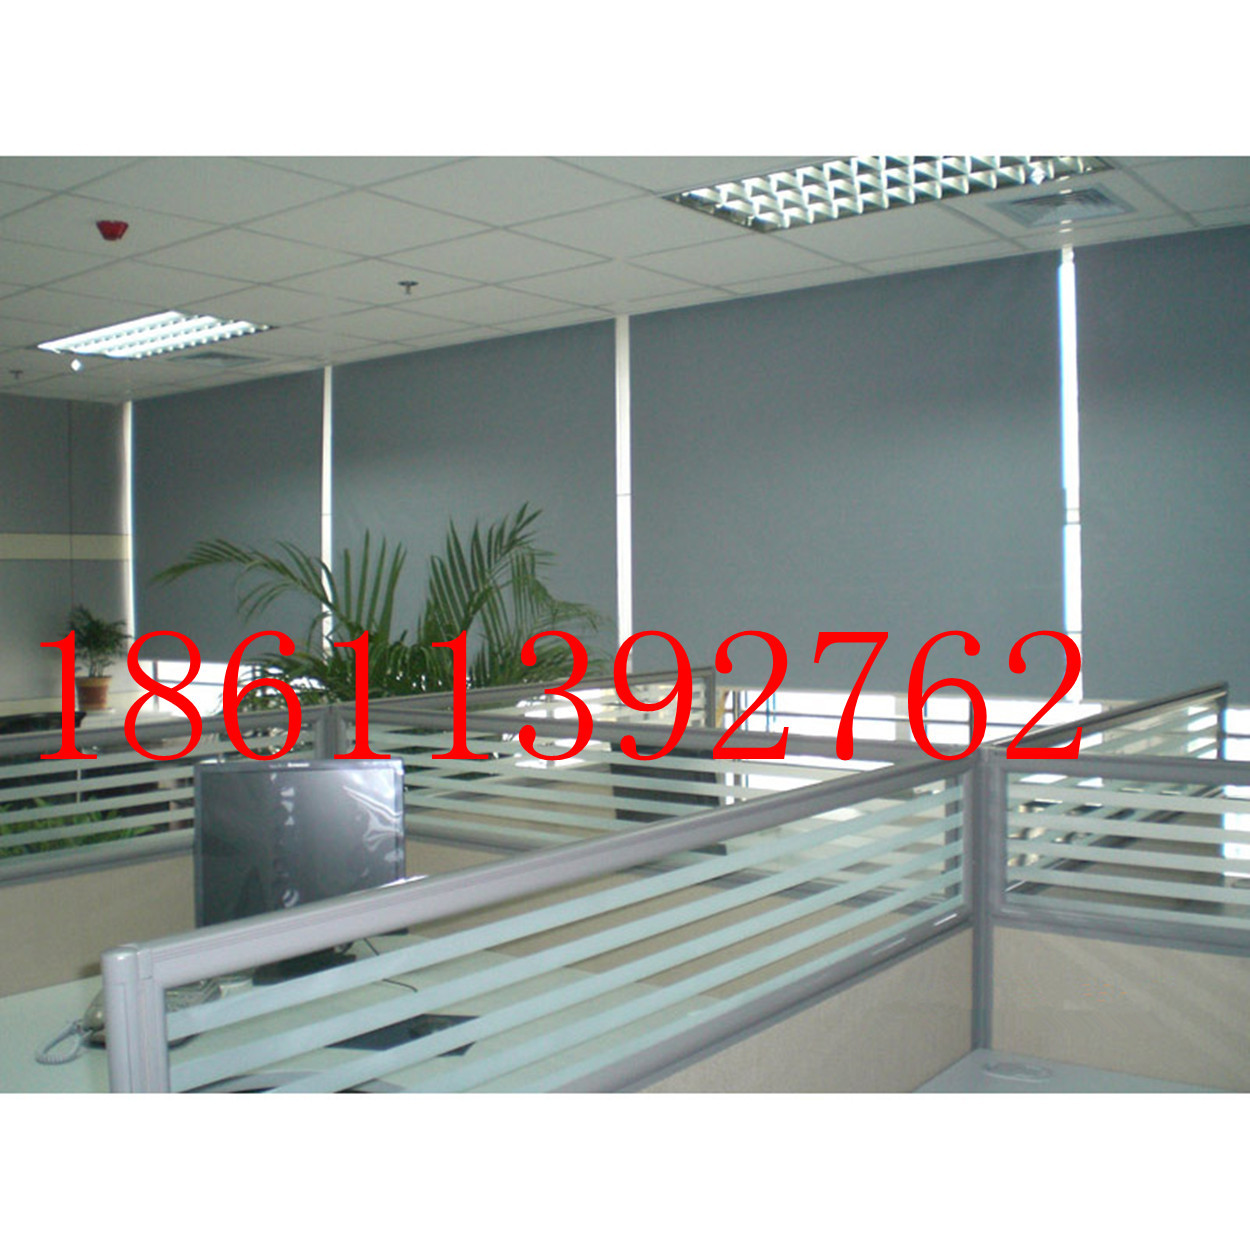 Popular Electric Roller Blinds Buy Cheap Electric Roller